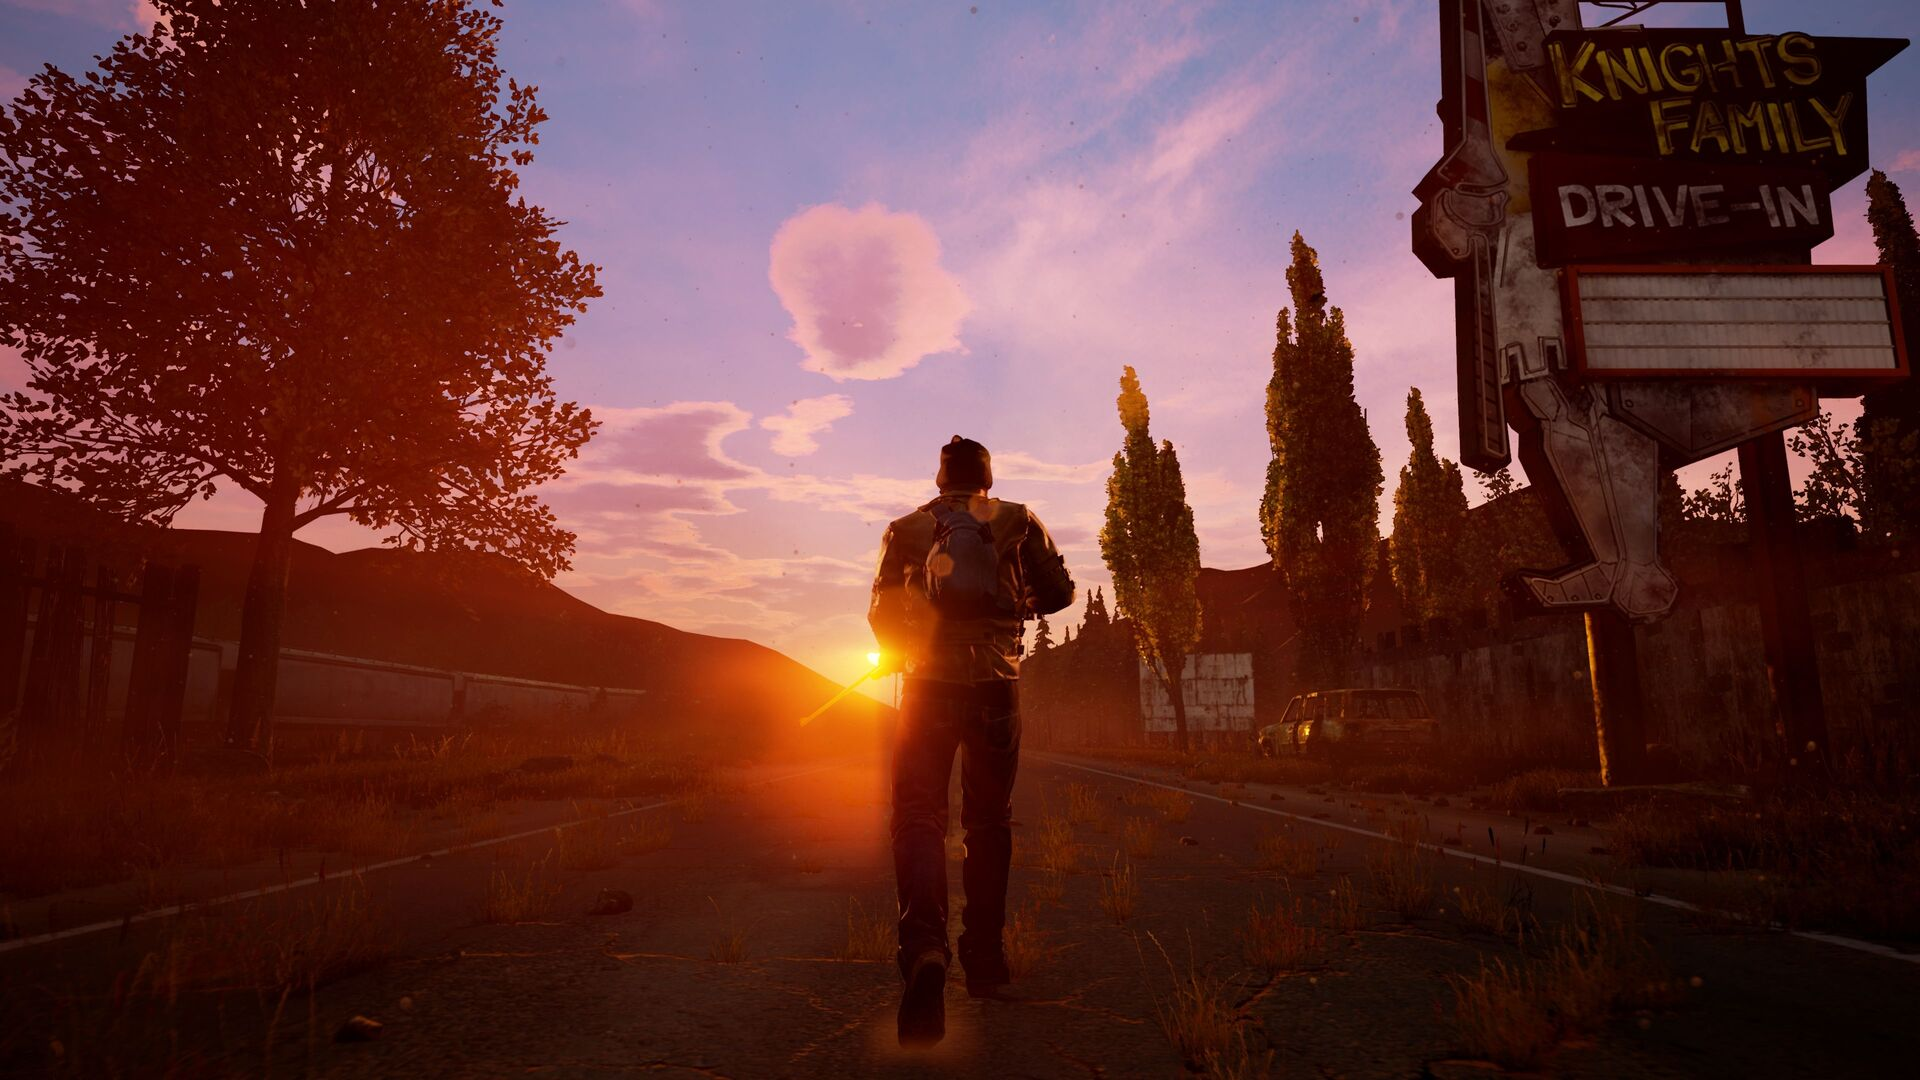 1920x1080 State Of Decay 2 2018 Laptop Full Hd 1080p Hd 4k